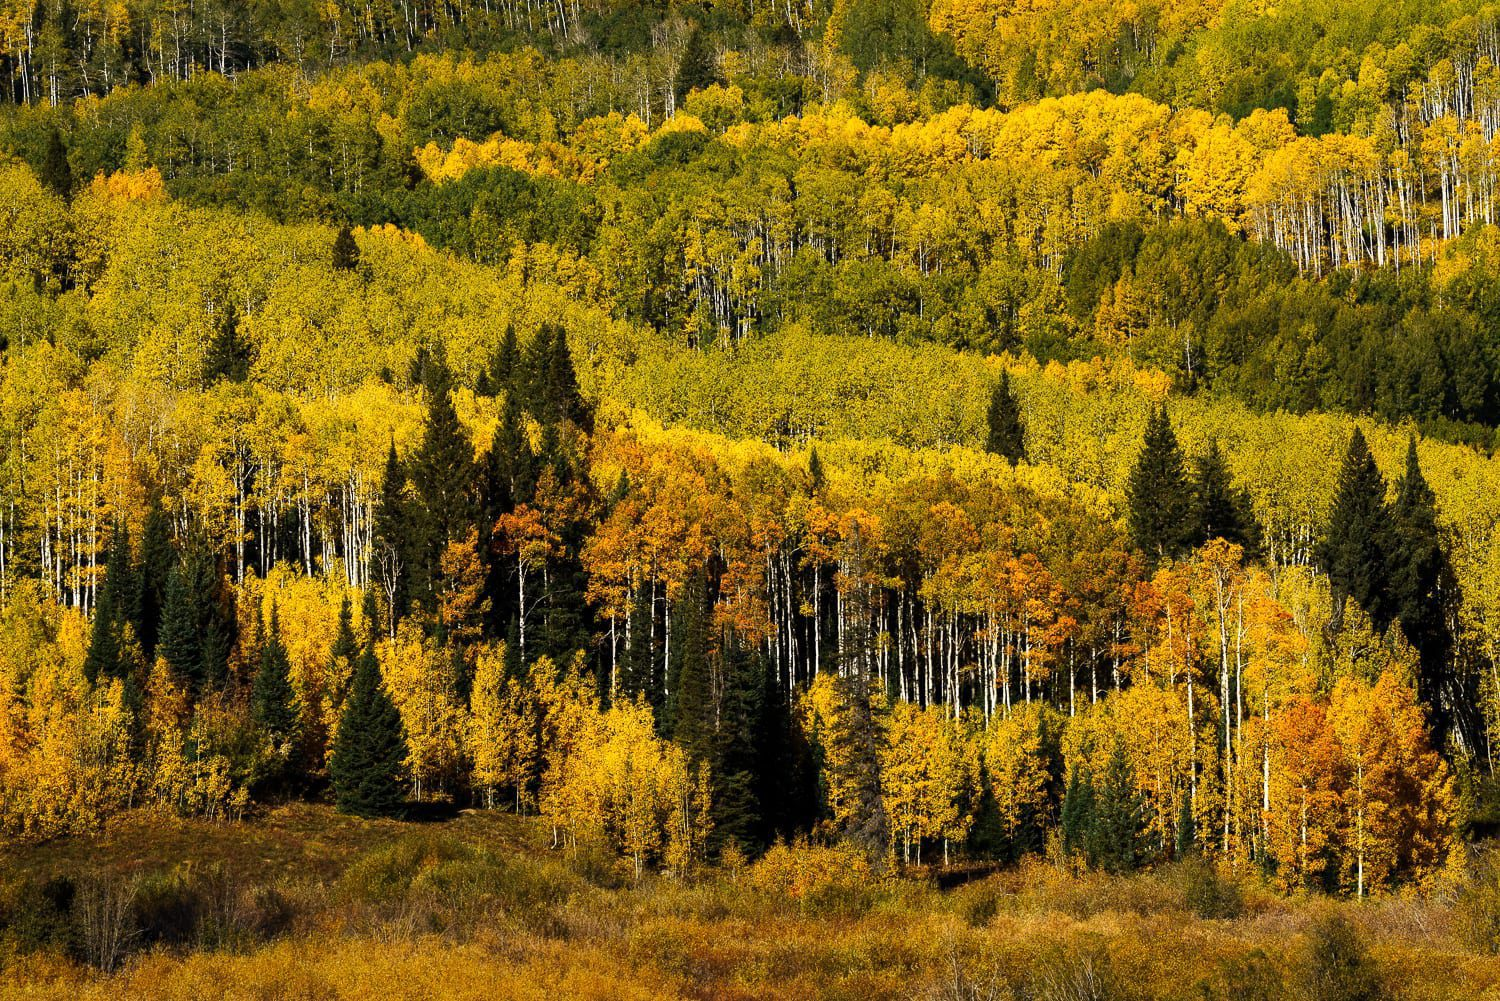 A section of aspens in orange and yellow fall colors with pine trees.